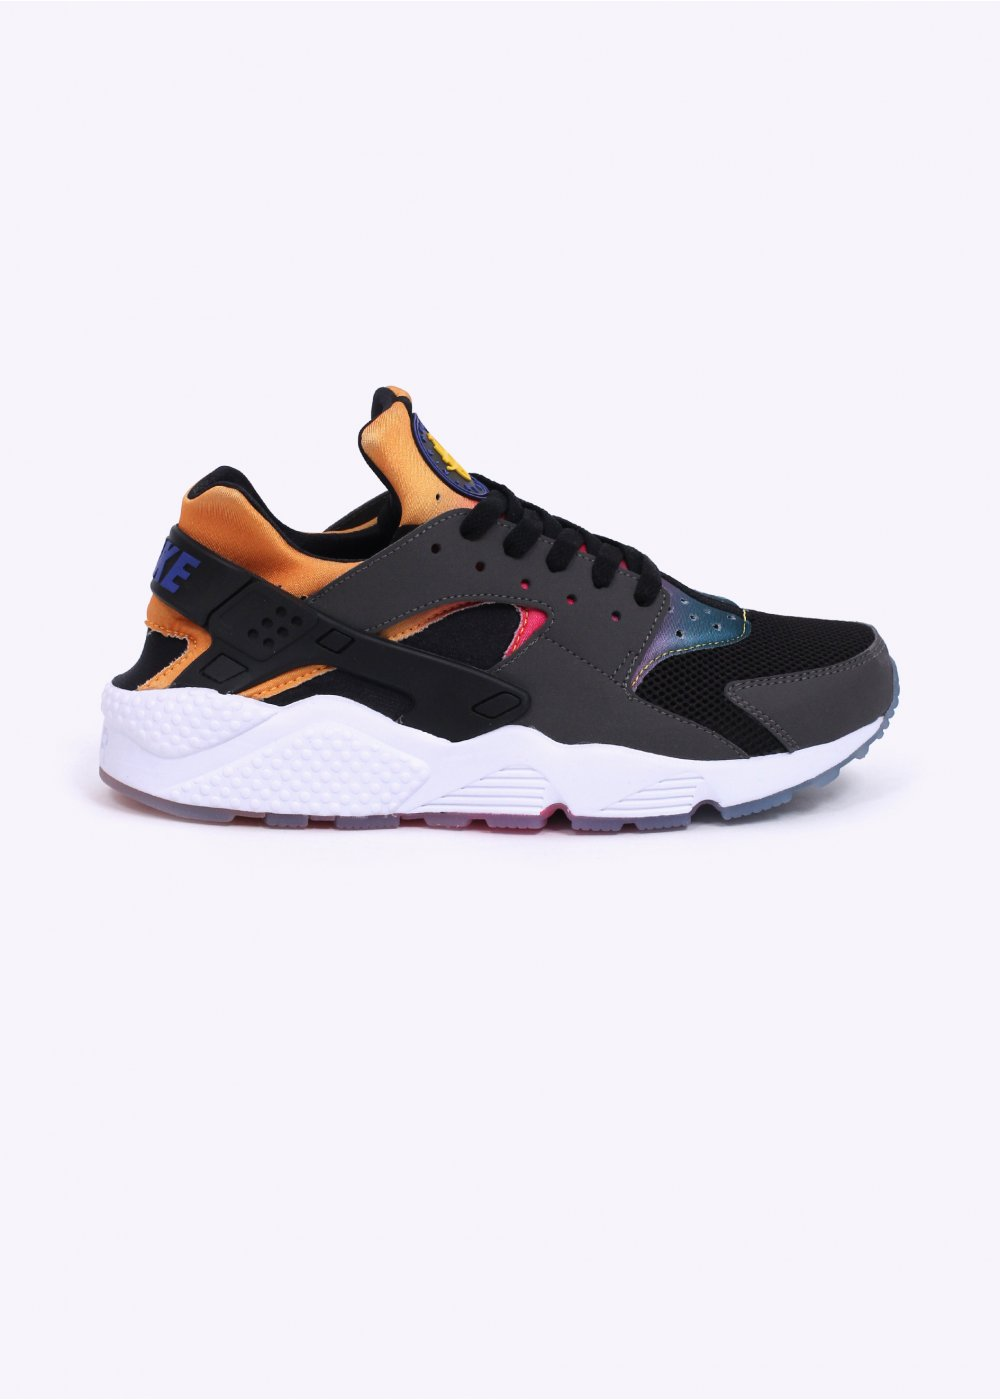 size 40 6a4a8 34141 Nike Footwear Air Huarache Run 'Sunset Rainbow' SD Trainers - Black / Volt  / Tour Yellow / Pink